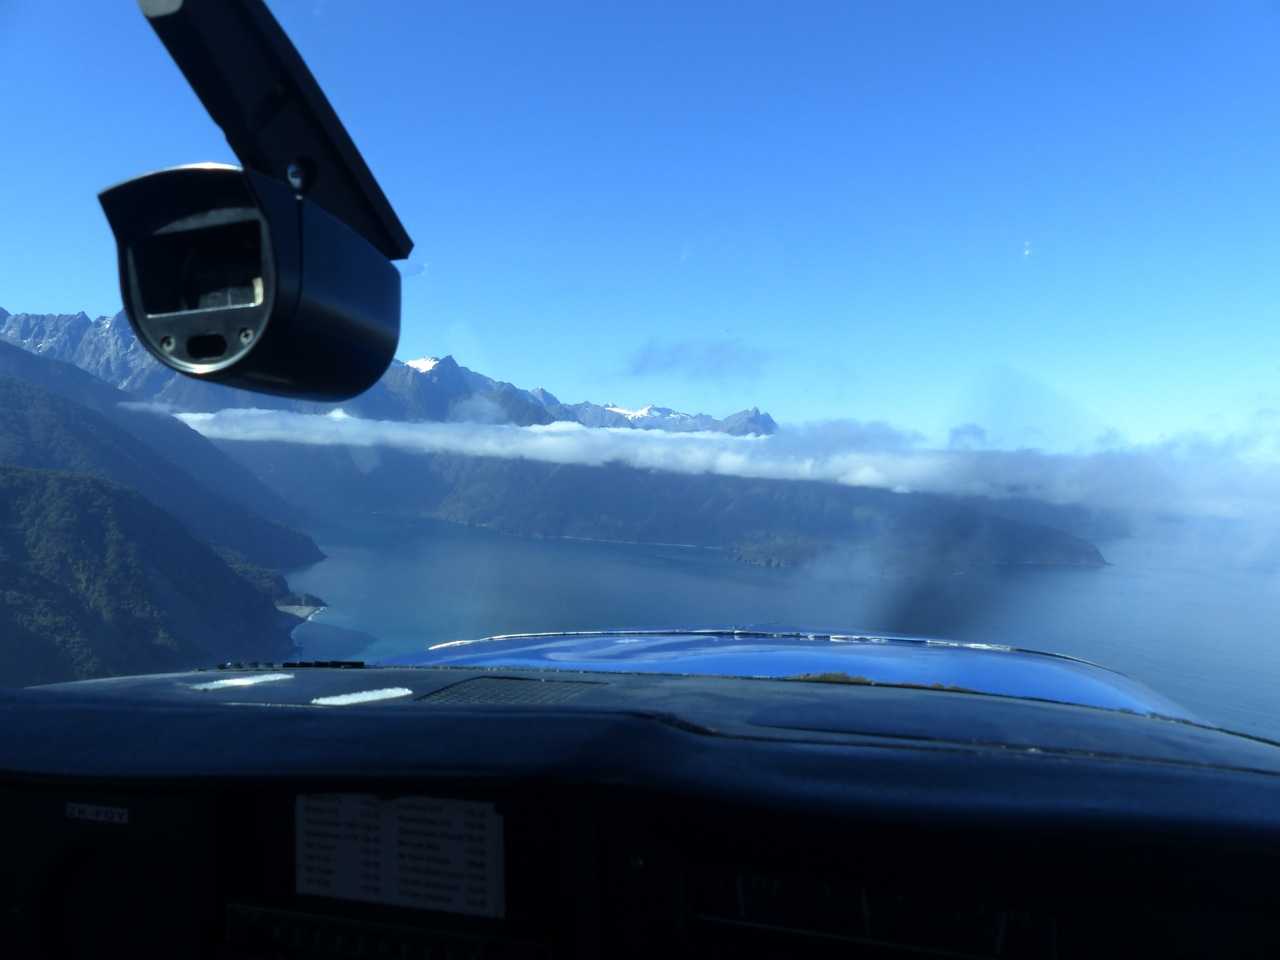 Beginning our approach into the fjord